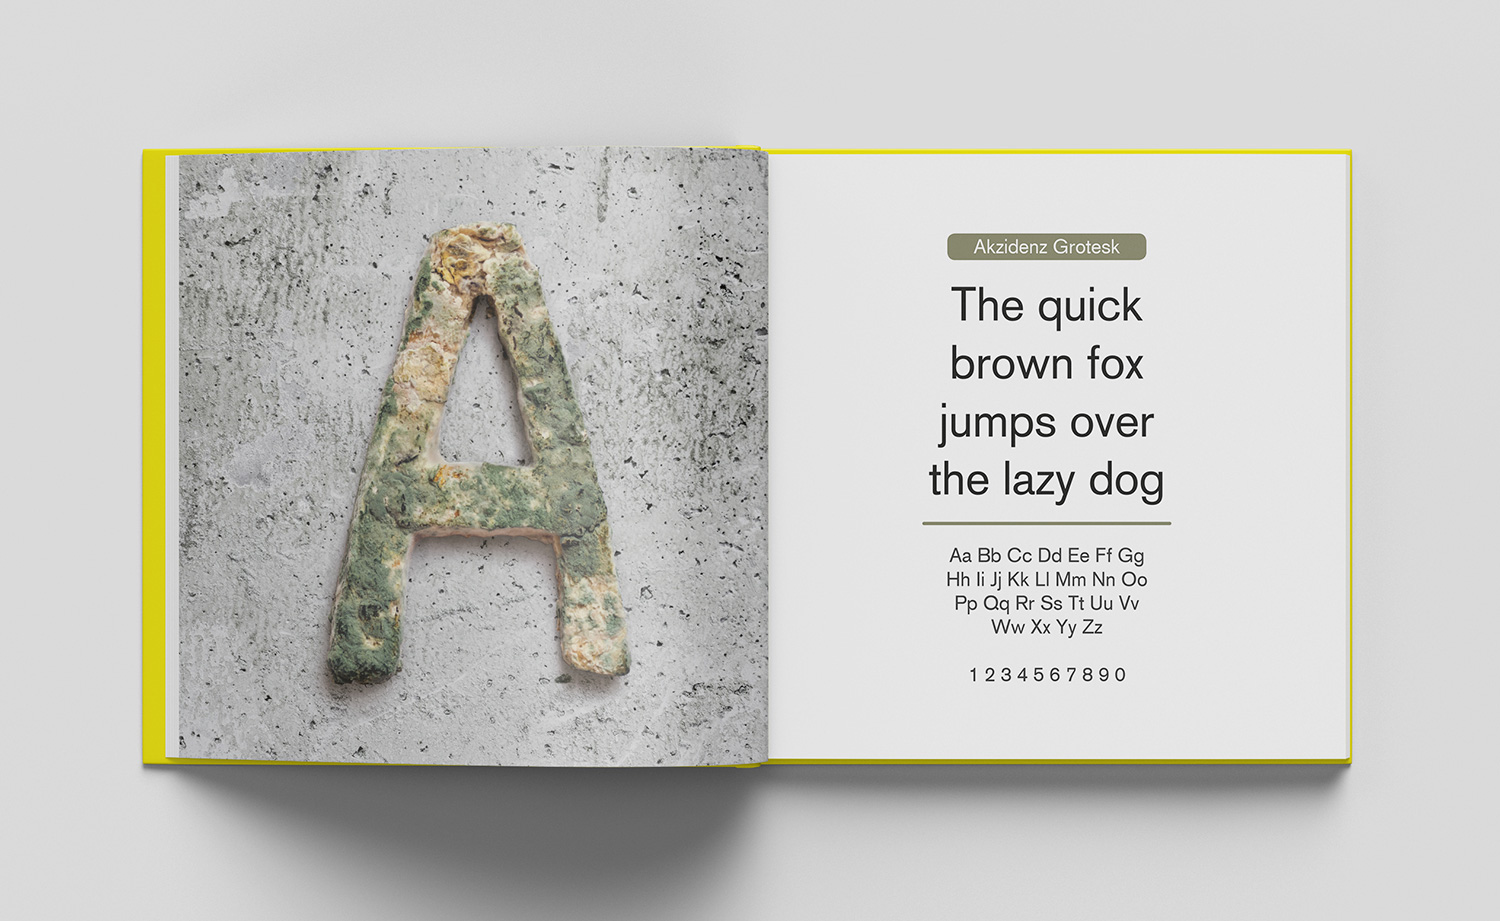 ABC of typography book spread letter A made from rotten bread on a concrete surface